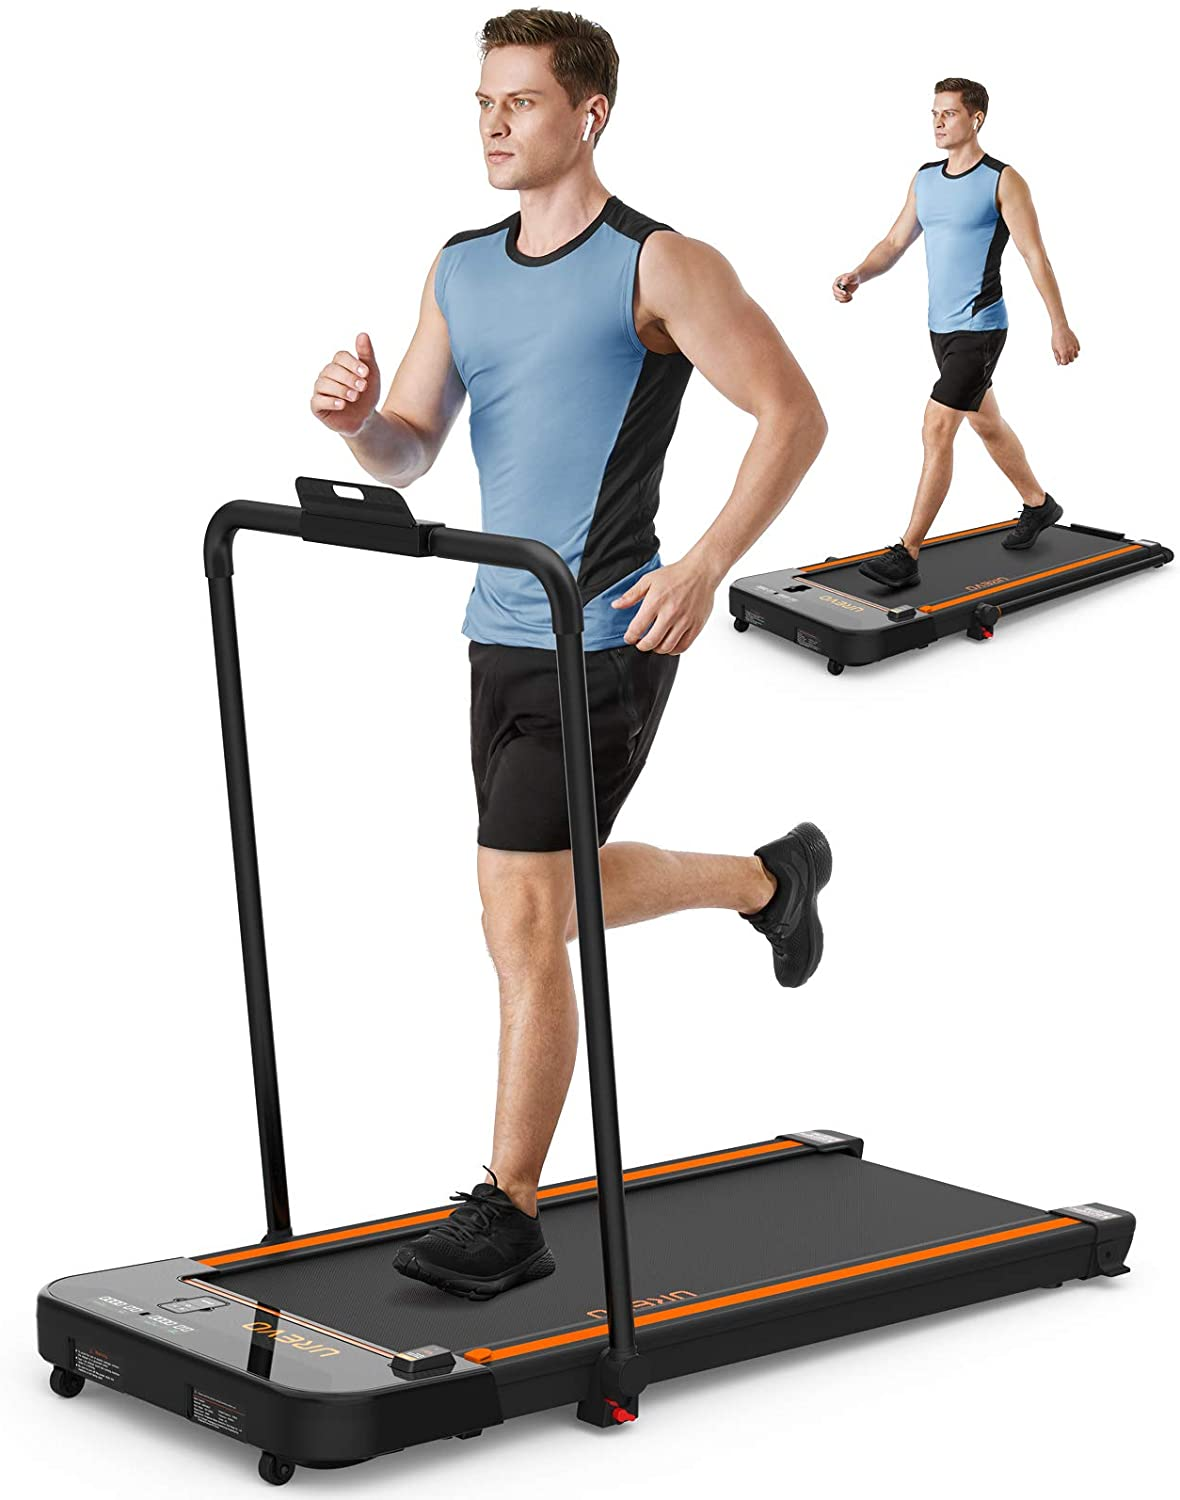 UREVO 2 in 1 Foldable Treadmill